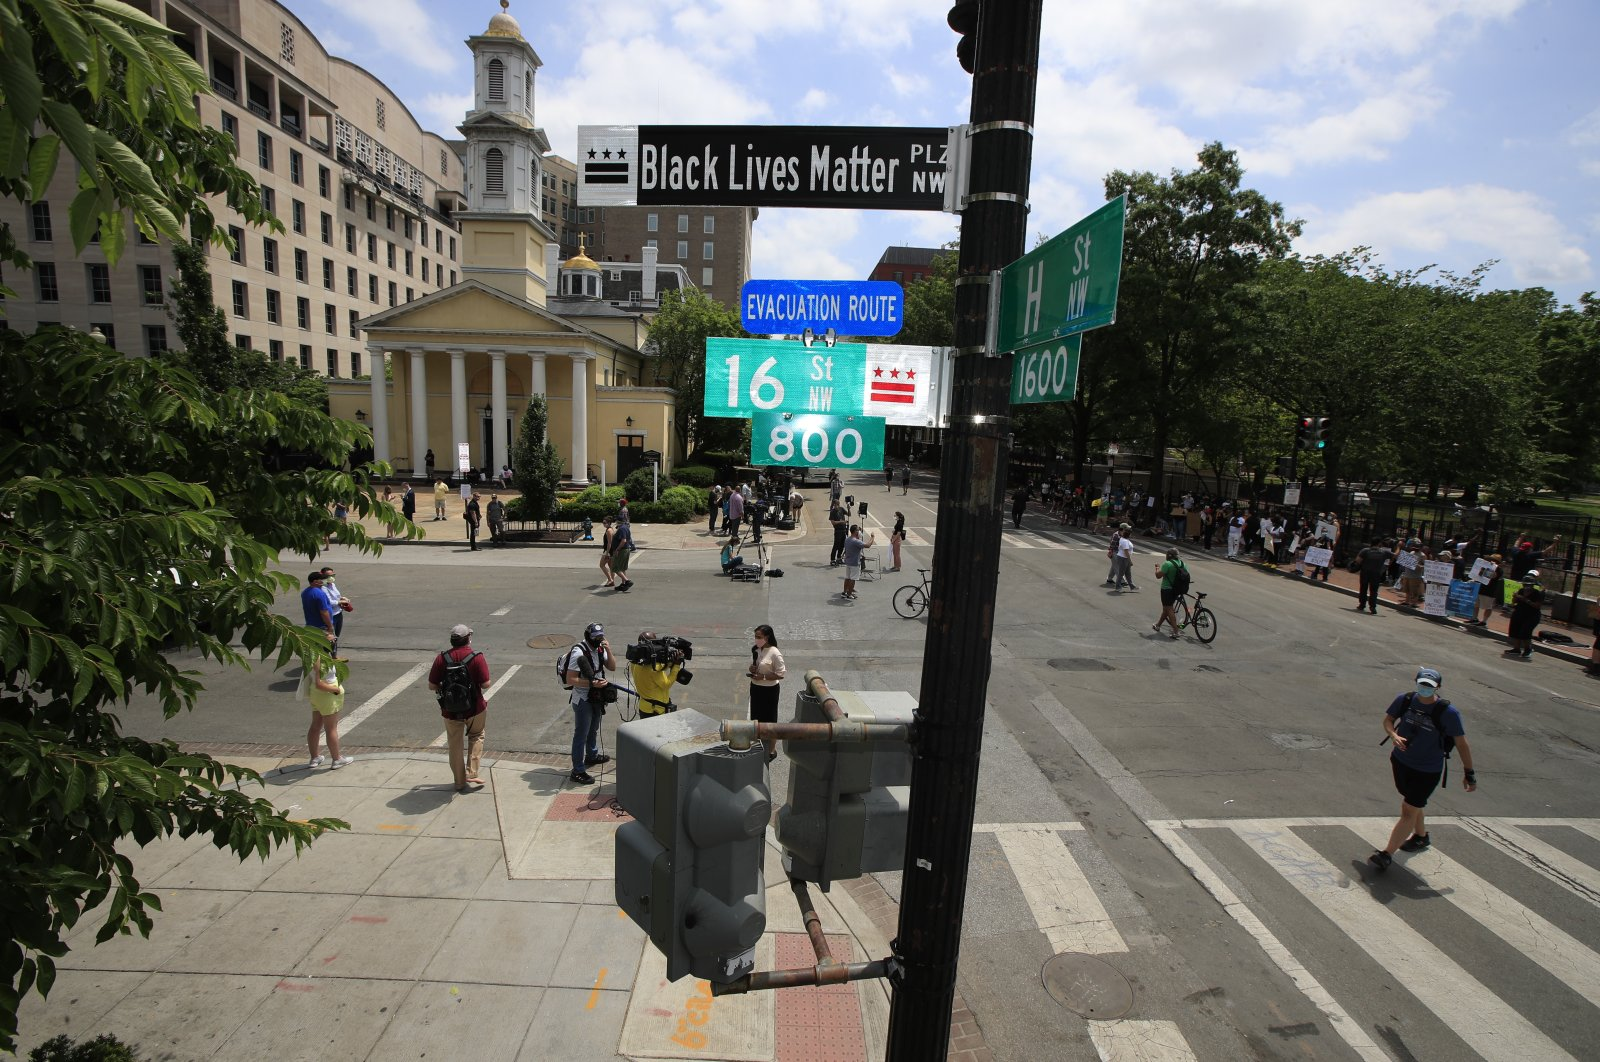 With St. John's Church in the background, people walk under a new street sign, Washington D.C. June 5, 2020. (AP Photo)